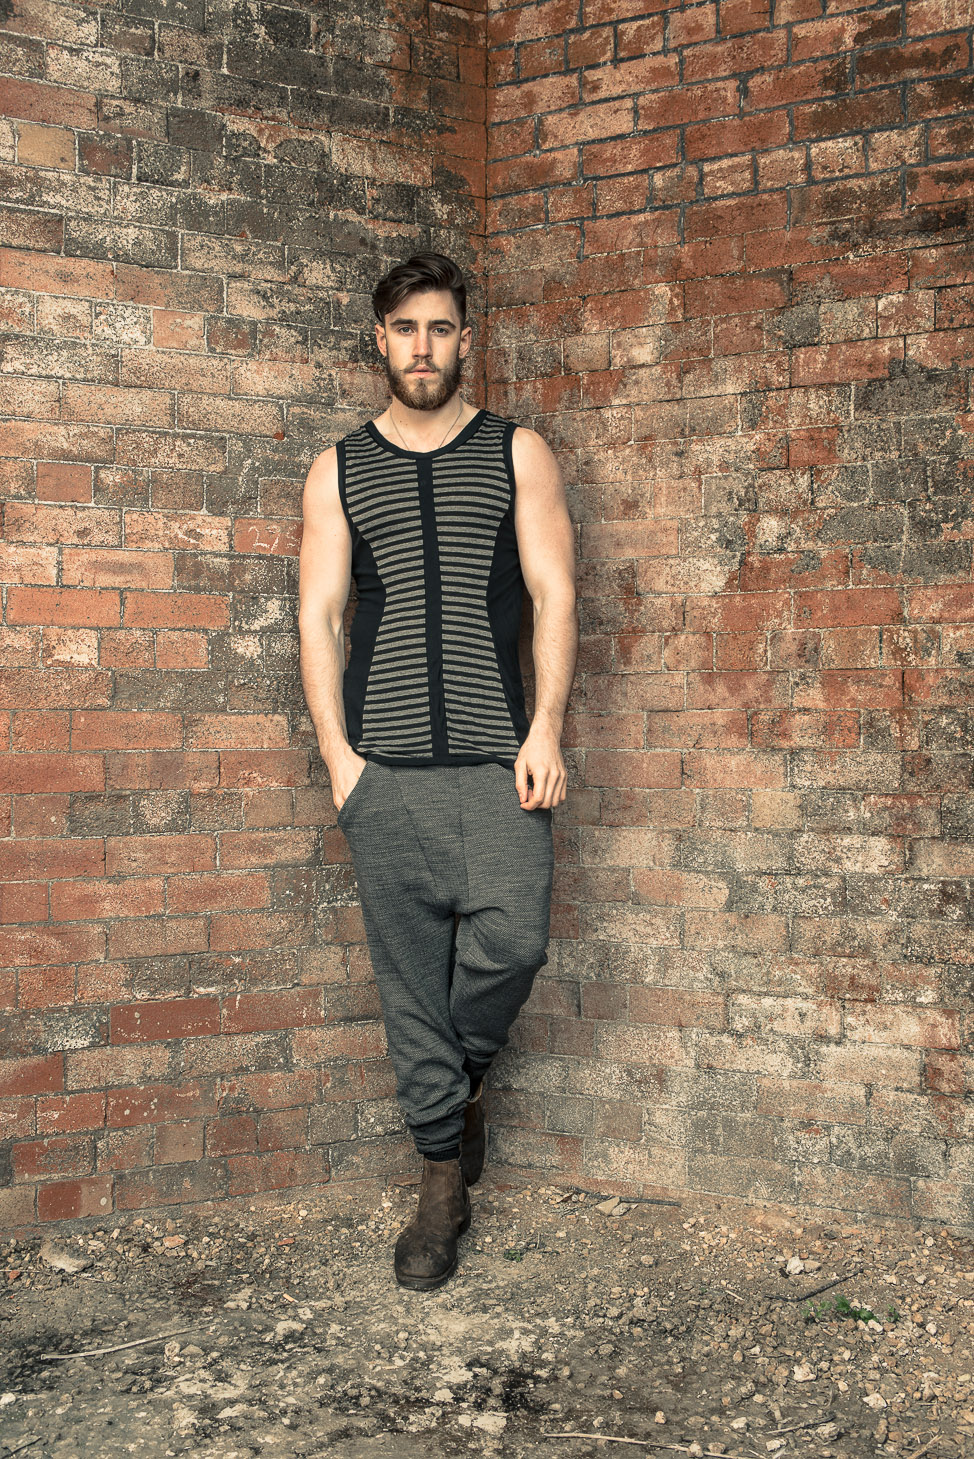 zaramia-ava-zaramiaava-leeds-fashion-designer-ethical-sustainable-tailored-minimalist-stripe-fitted-versatile-drape-grey-tshirt-top-vest-hareem-trousers-black-grey-texture-styling-11